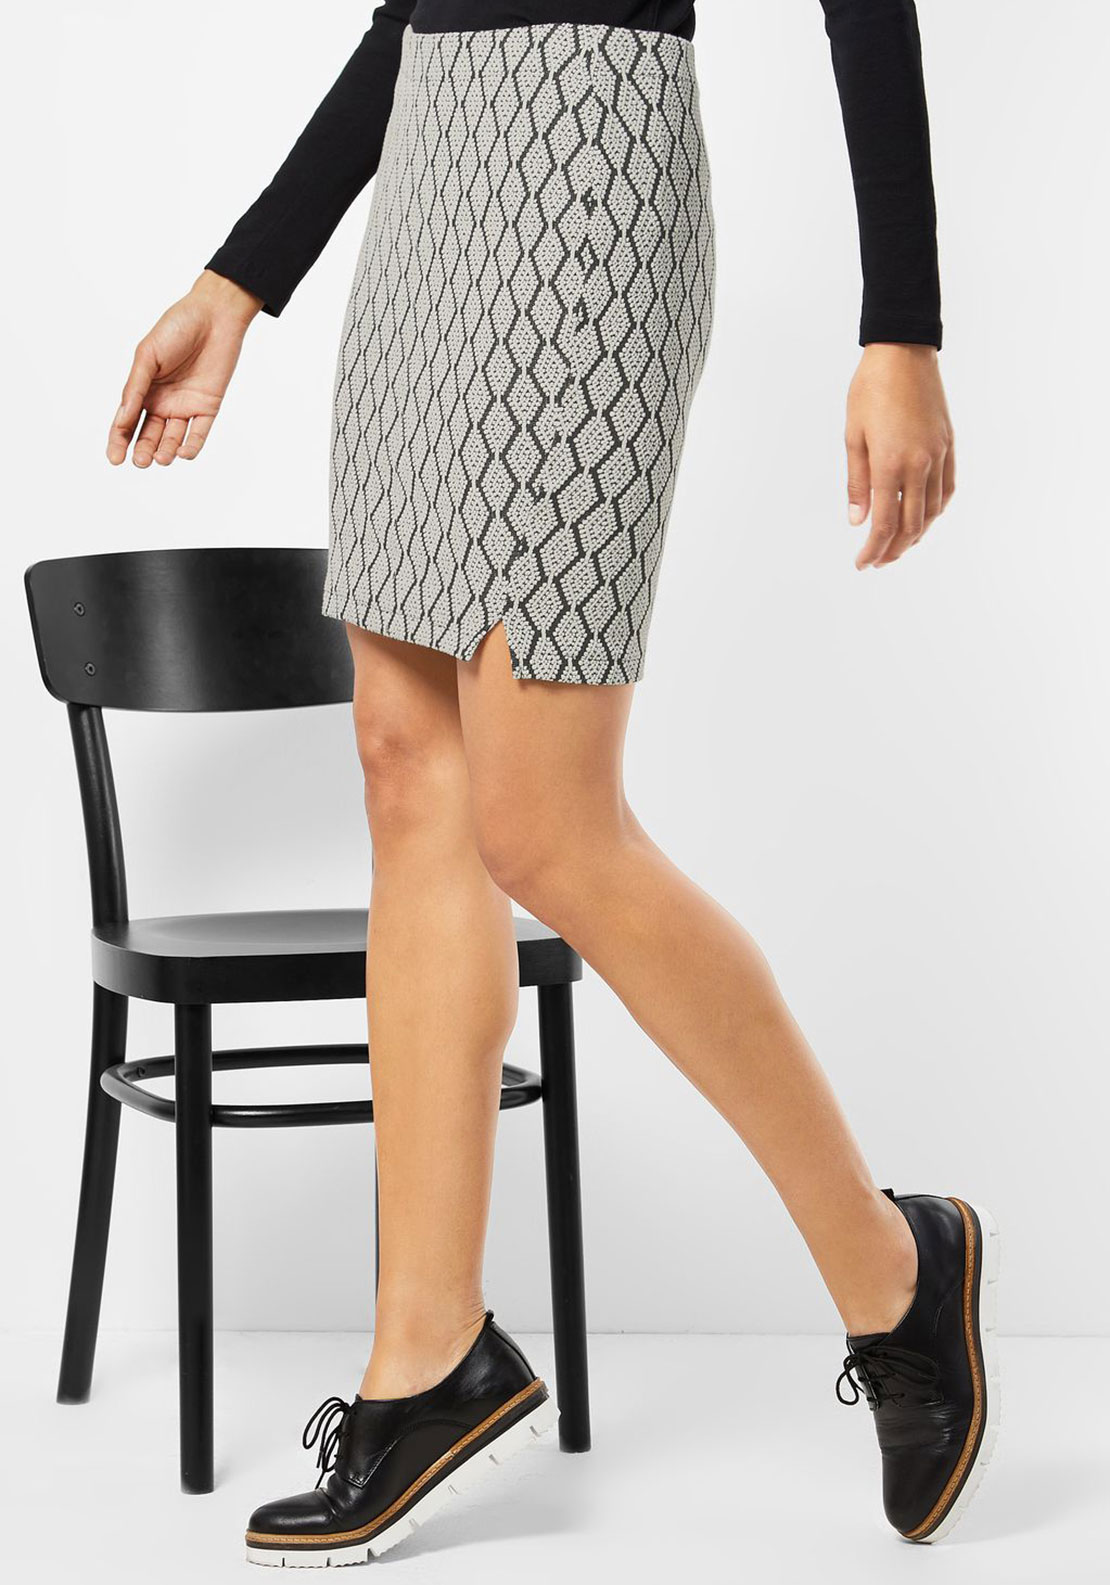 Street One Diamond Print Knit Skirt, Cream and Black